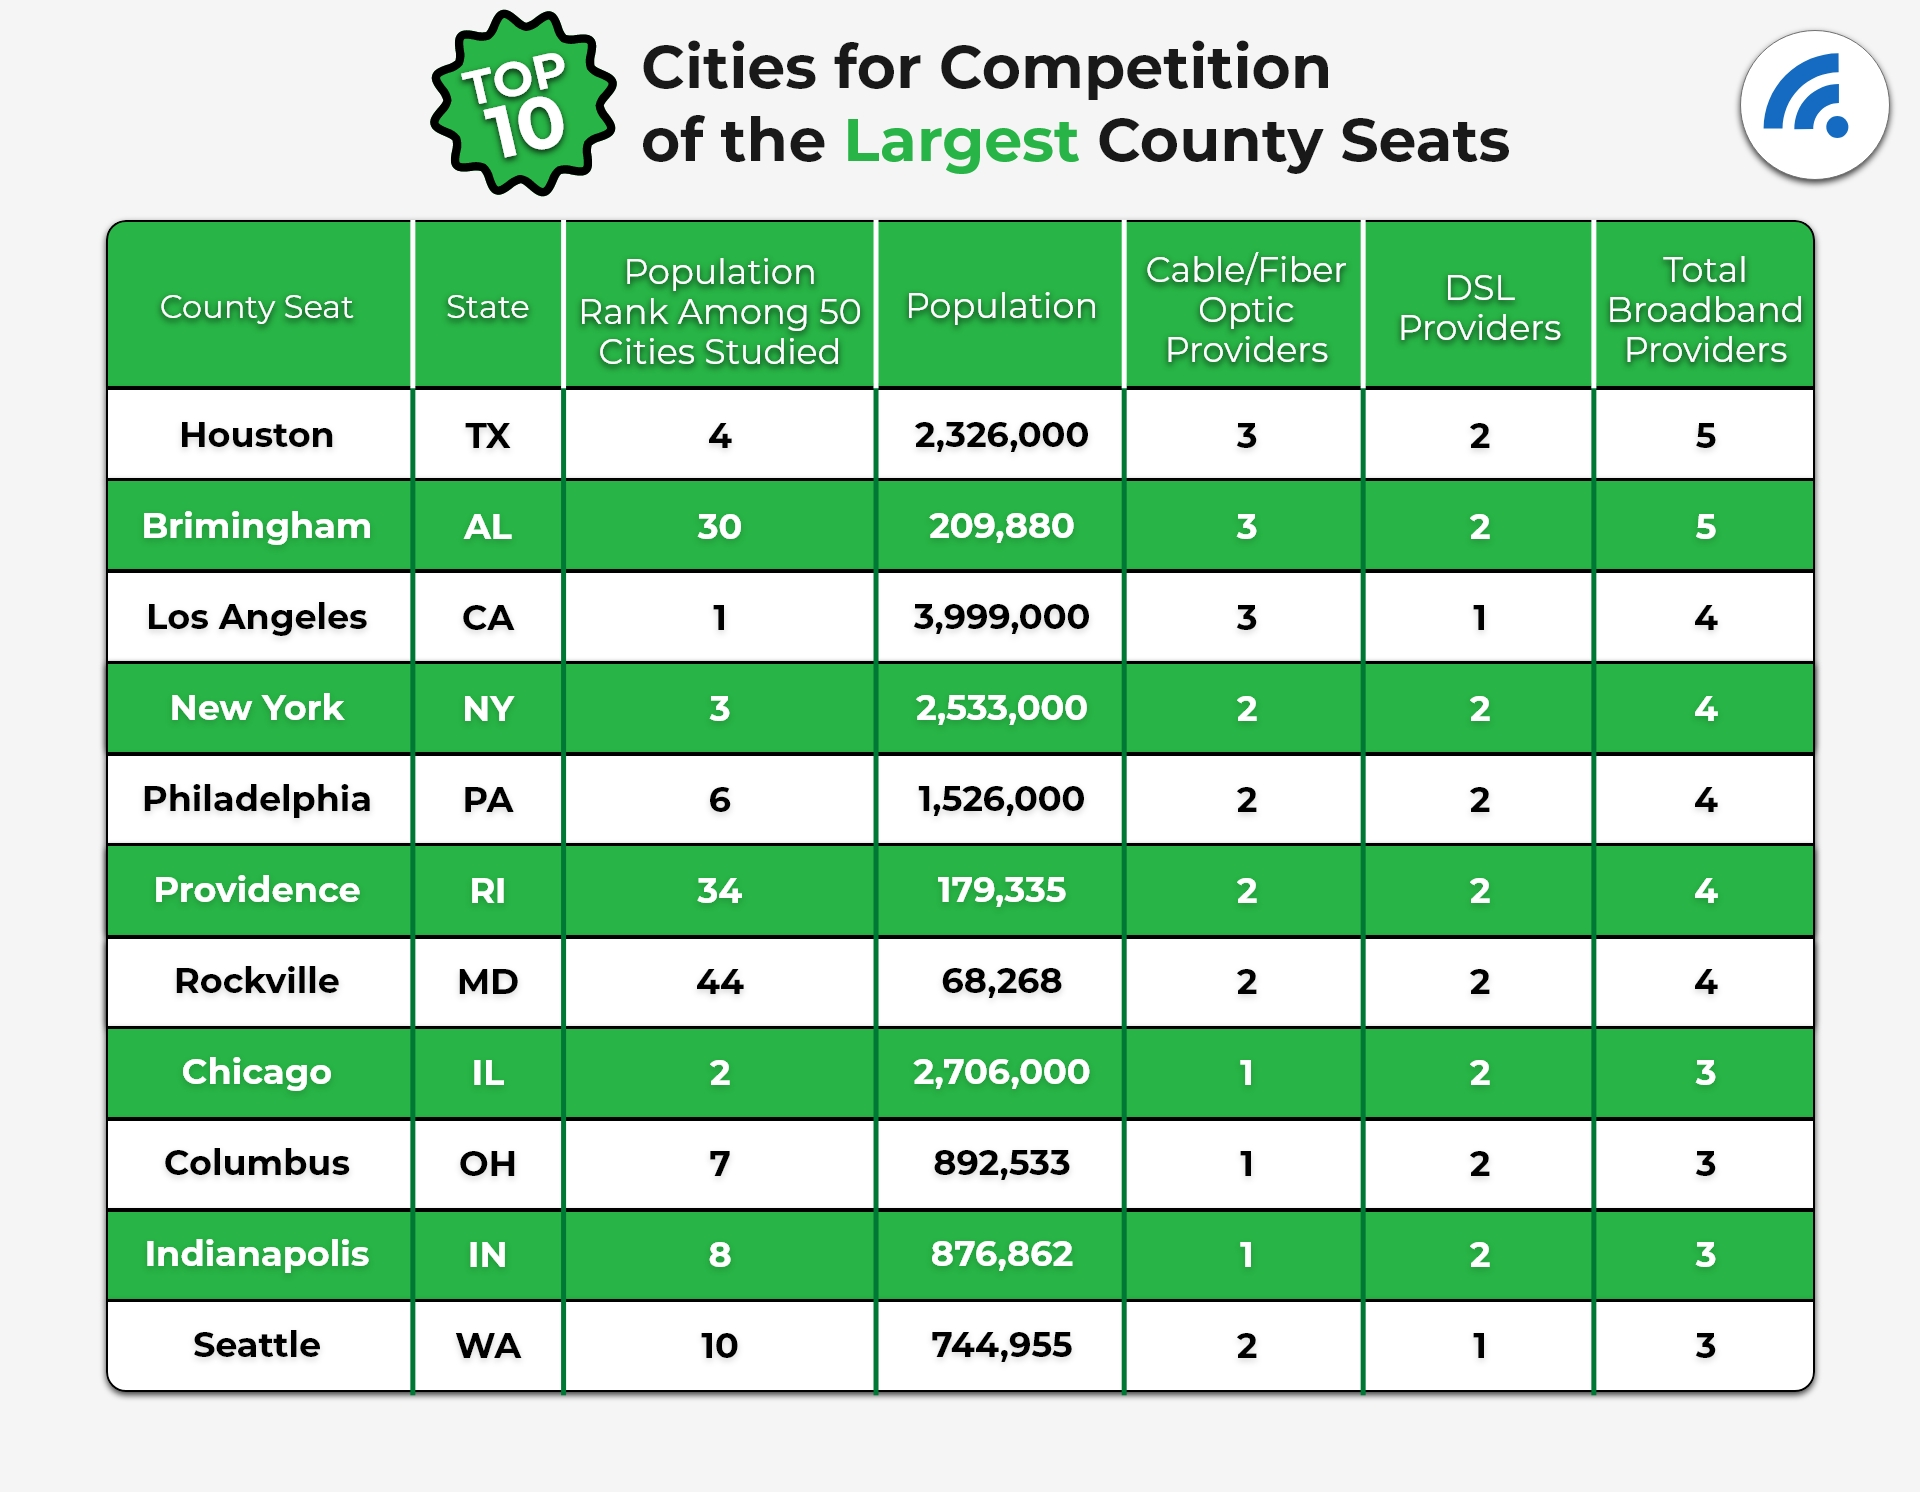 Top 10 Cities For Competition of the Largest County Seats